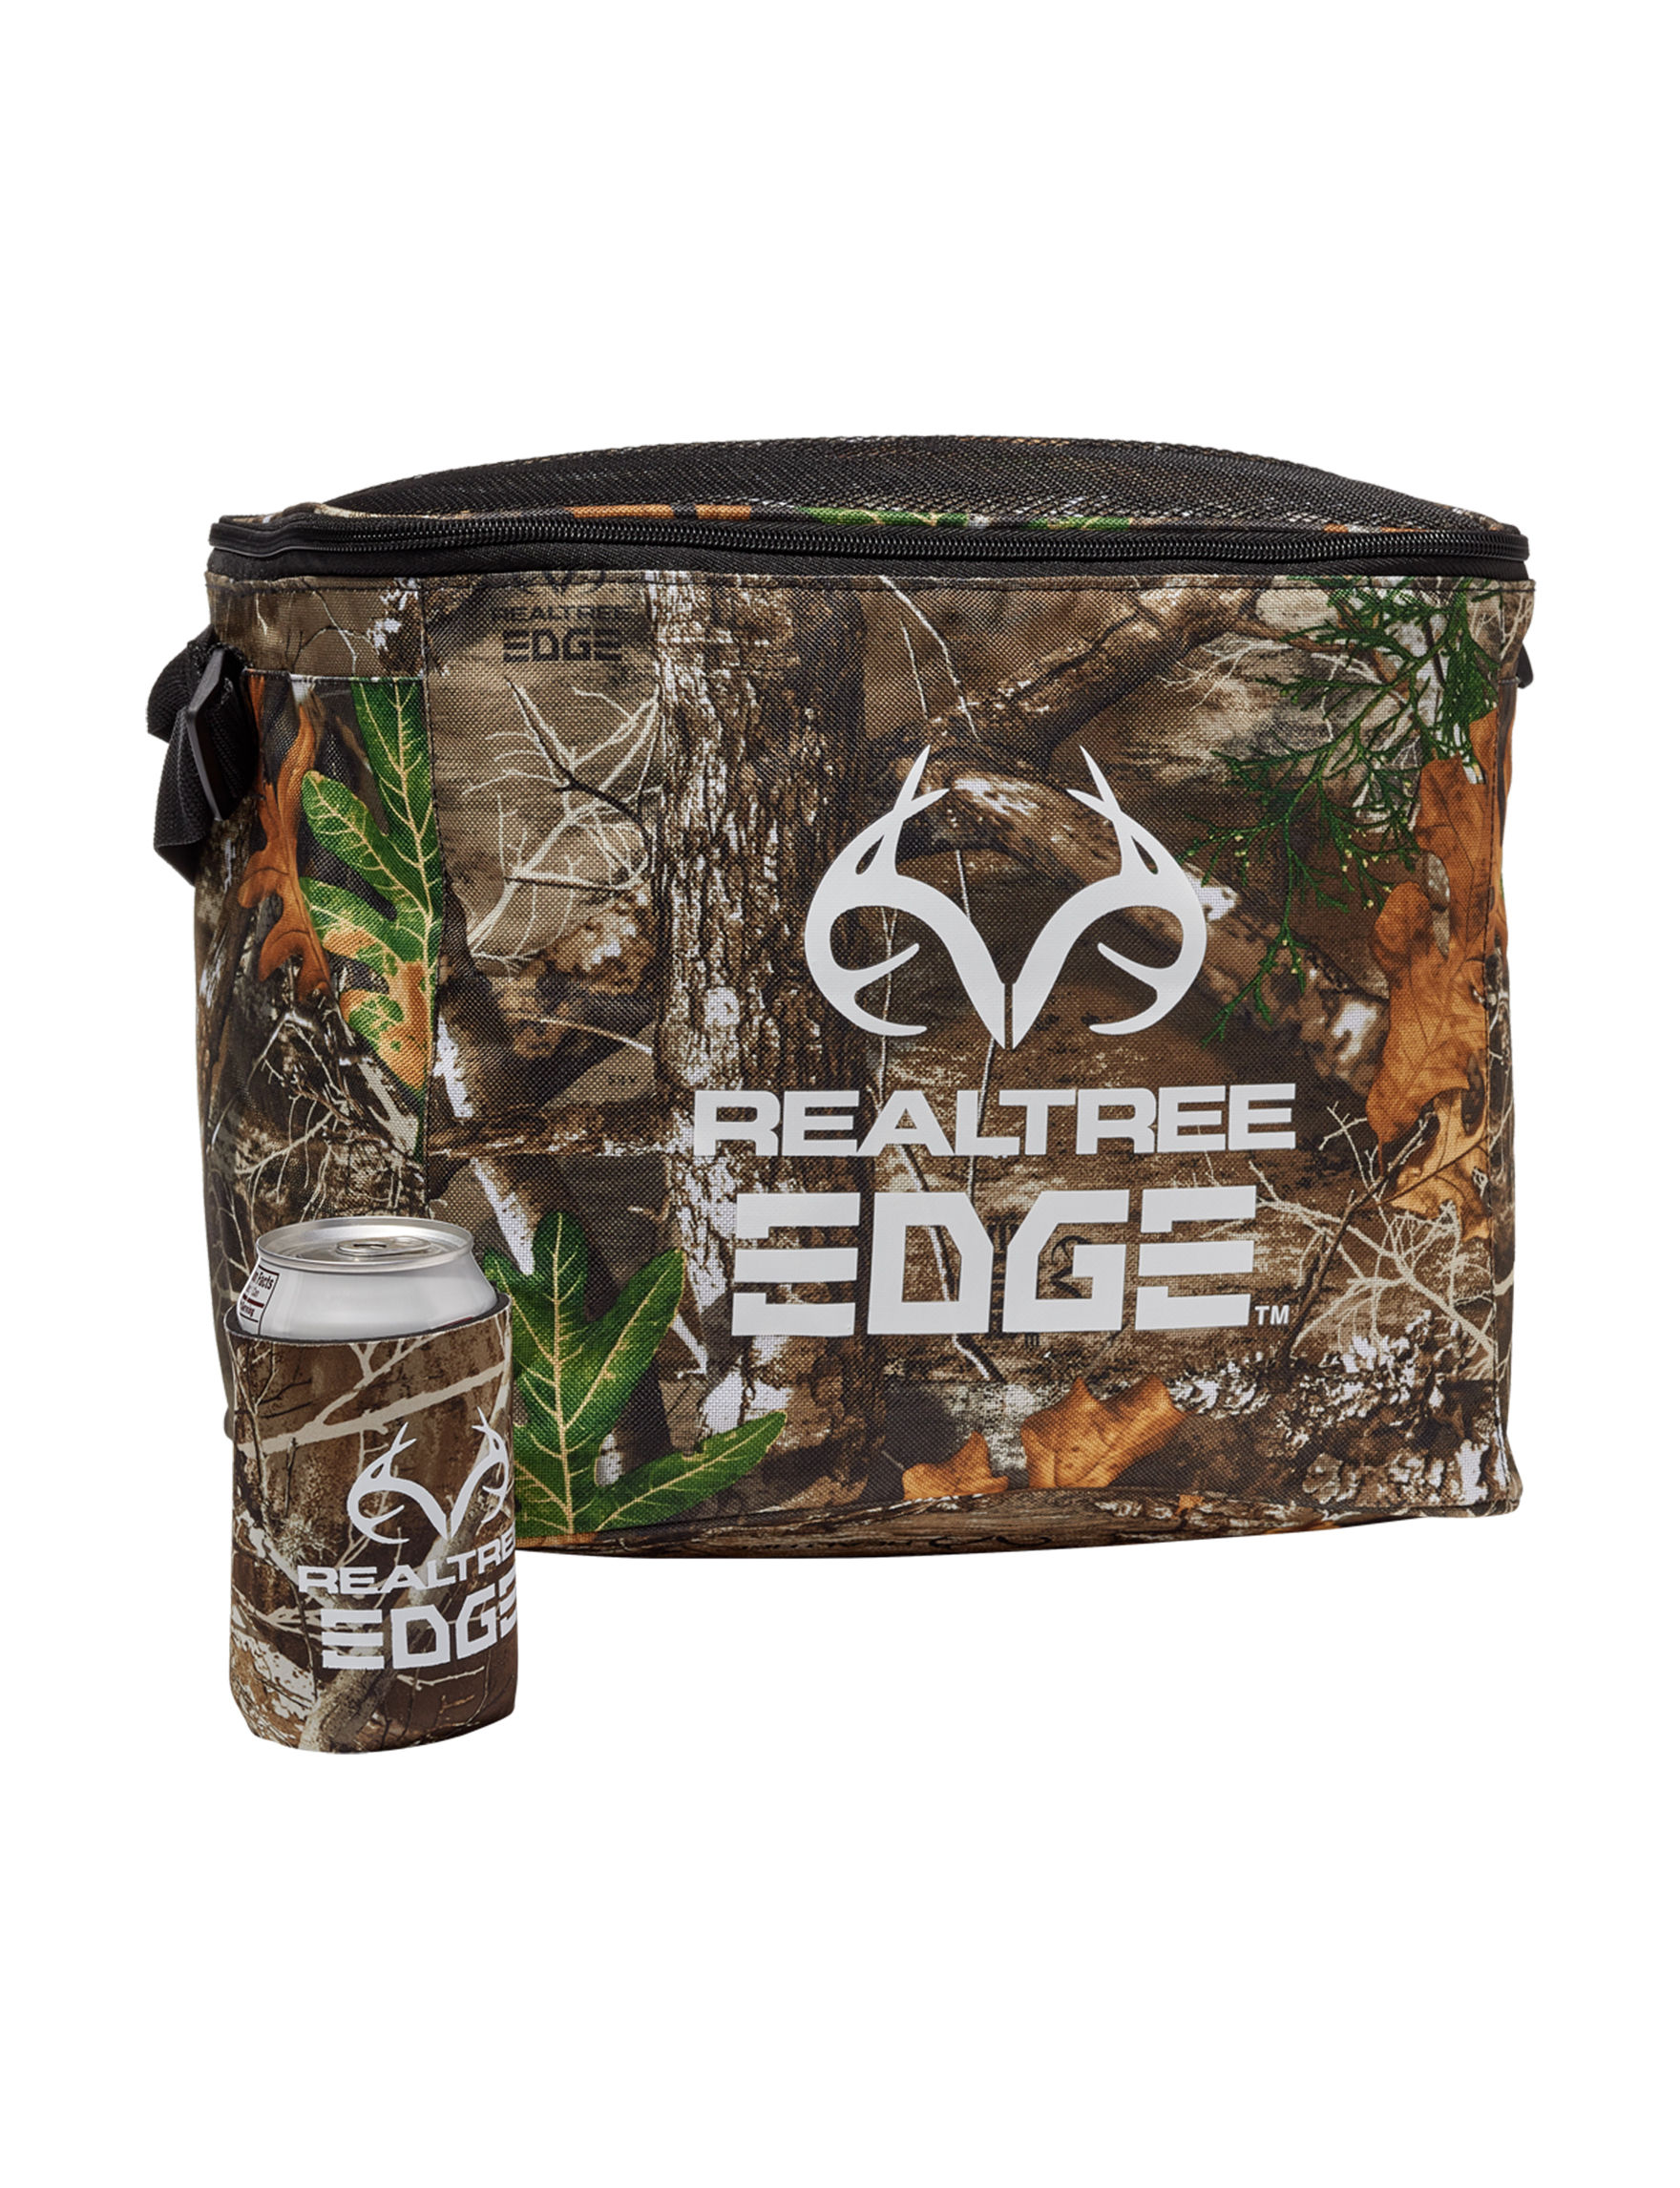 Realtree Grey Camo Coolers Camping & Outdoor Gear